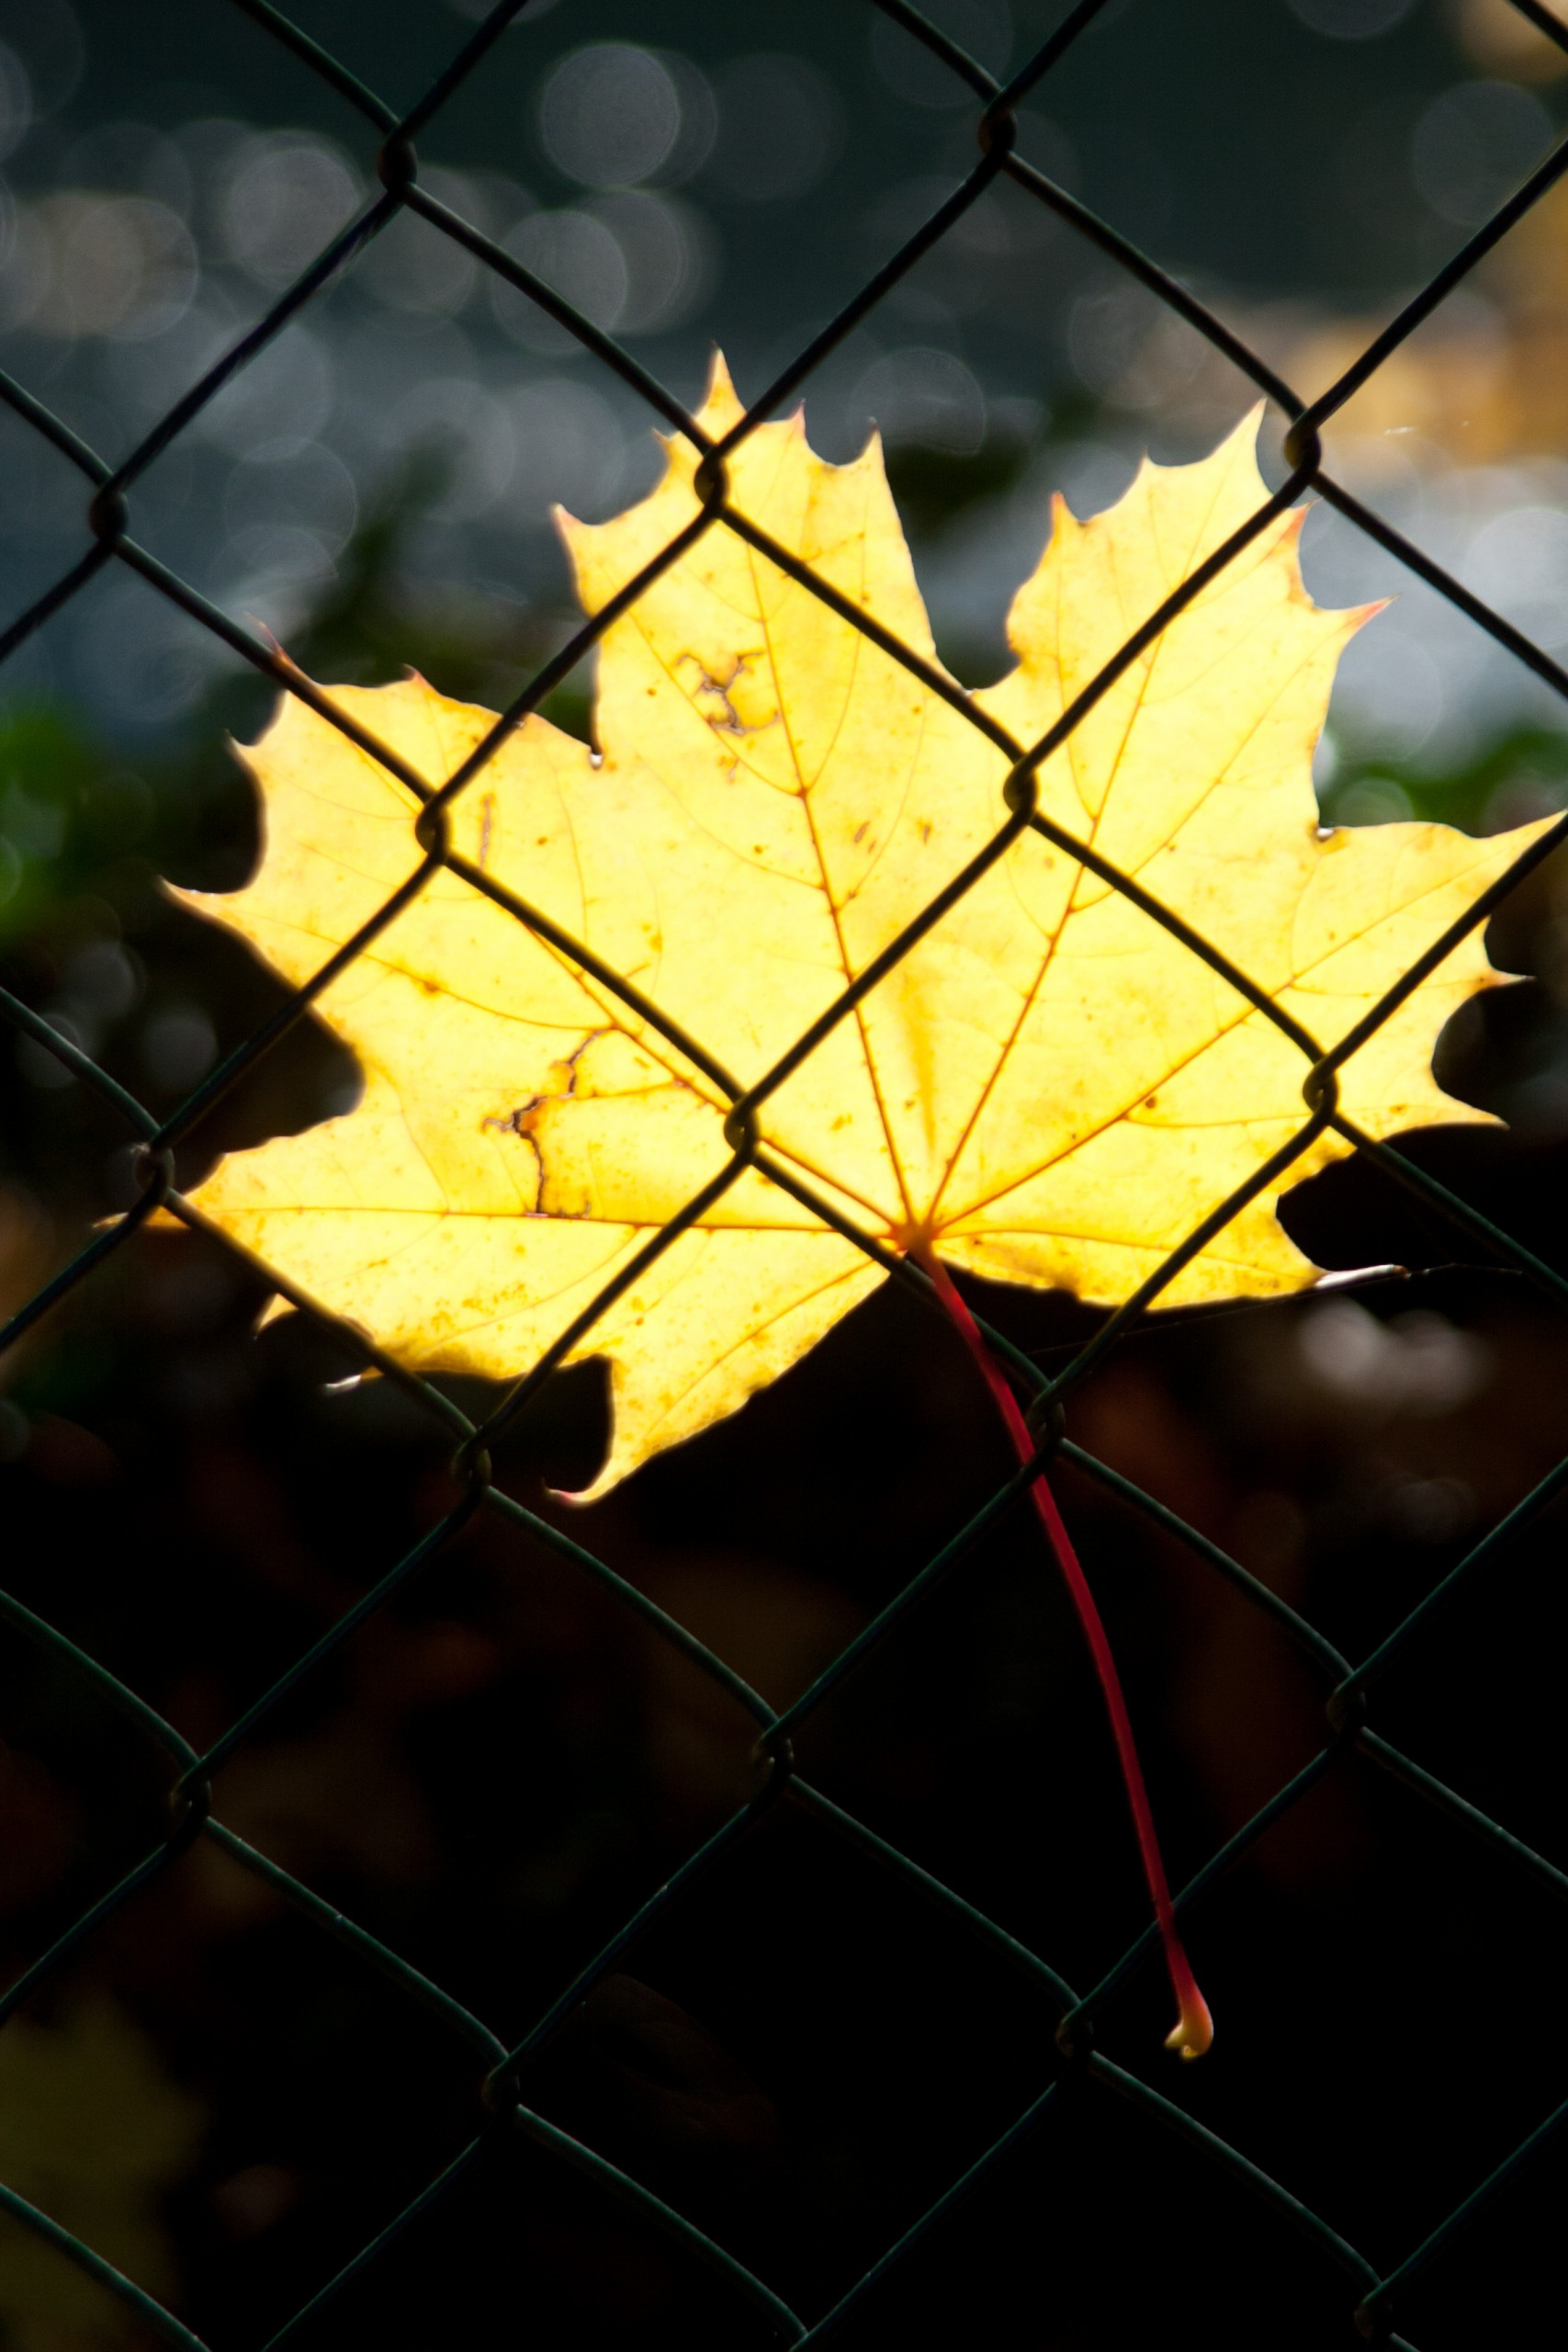 A maple leaf behind the net